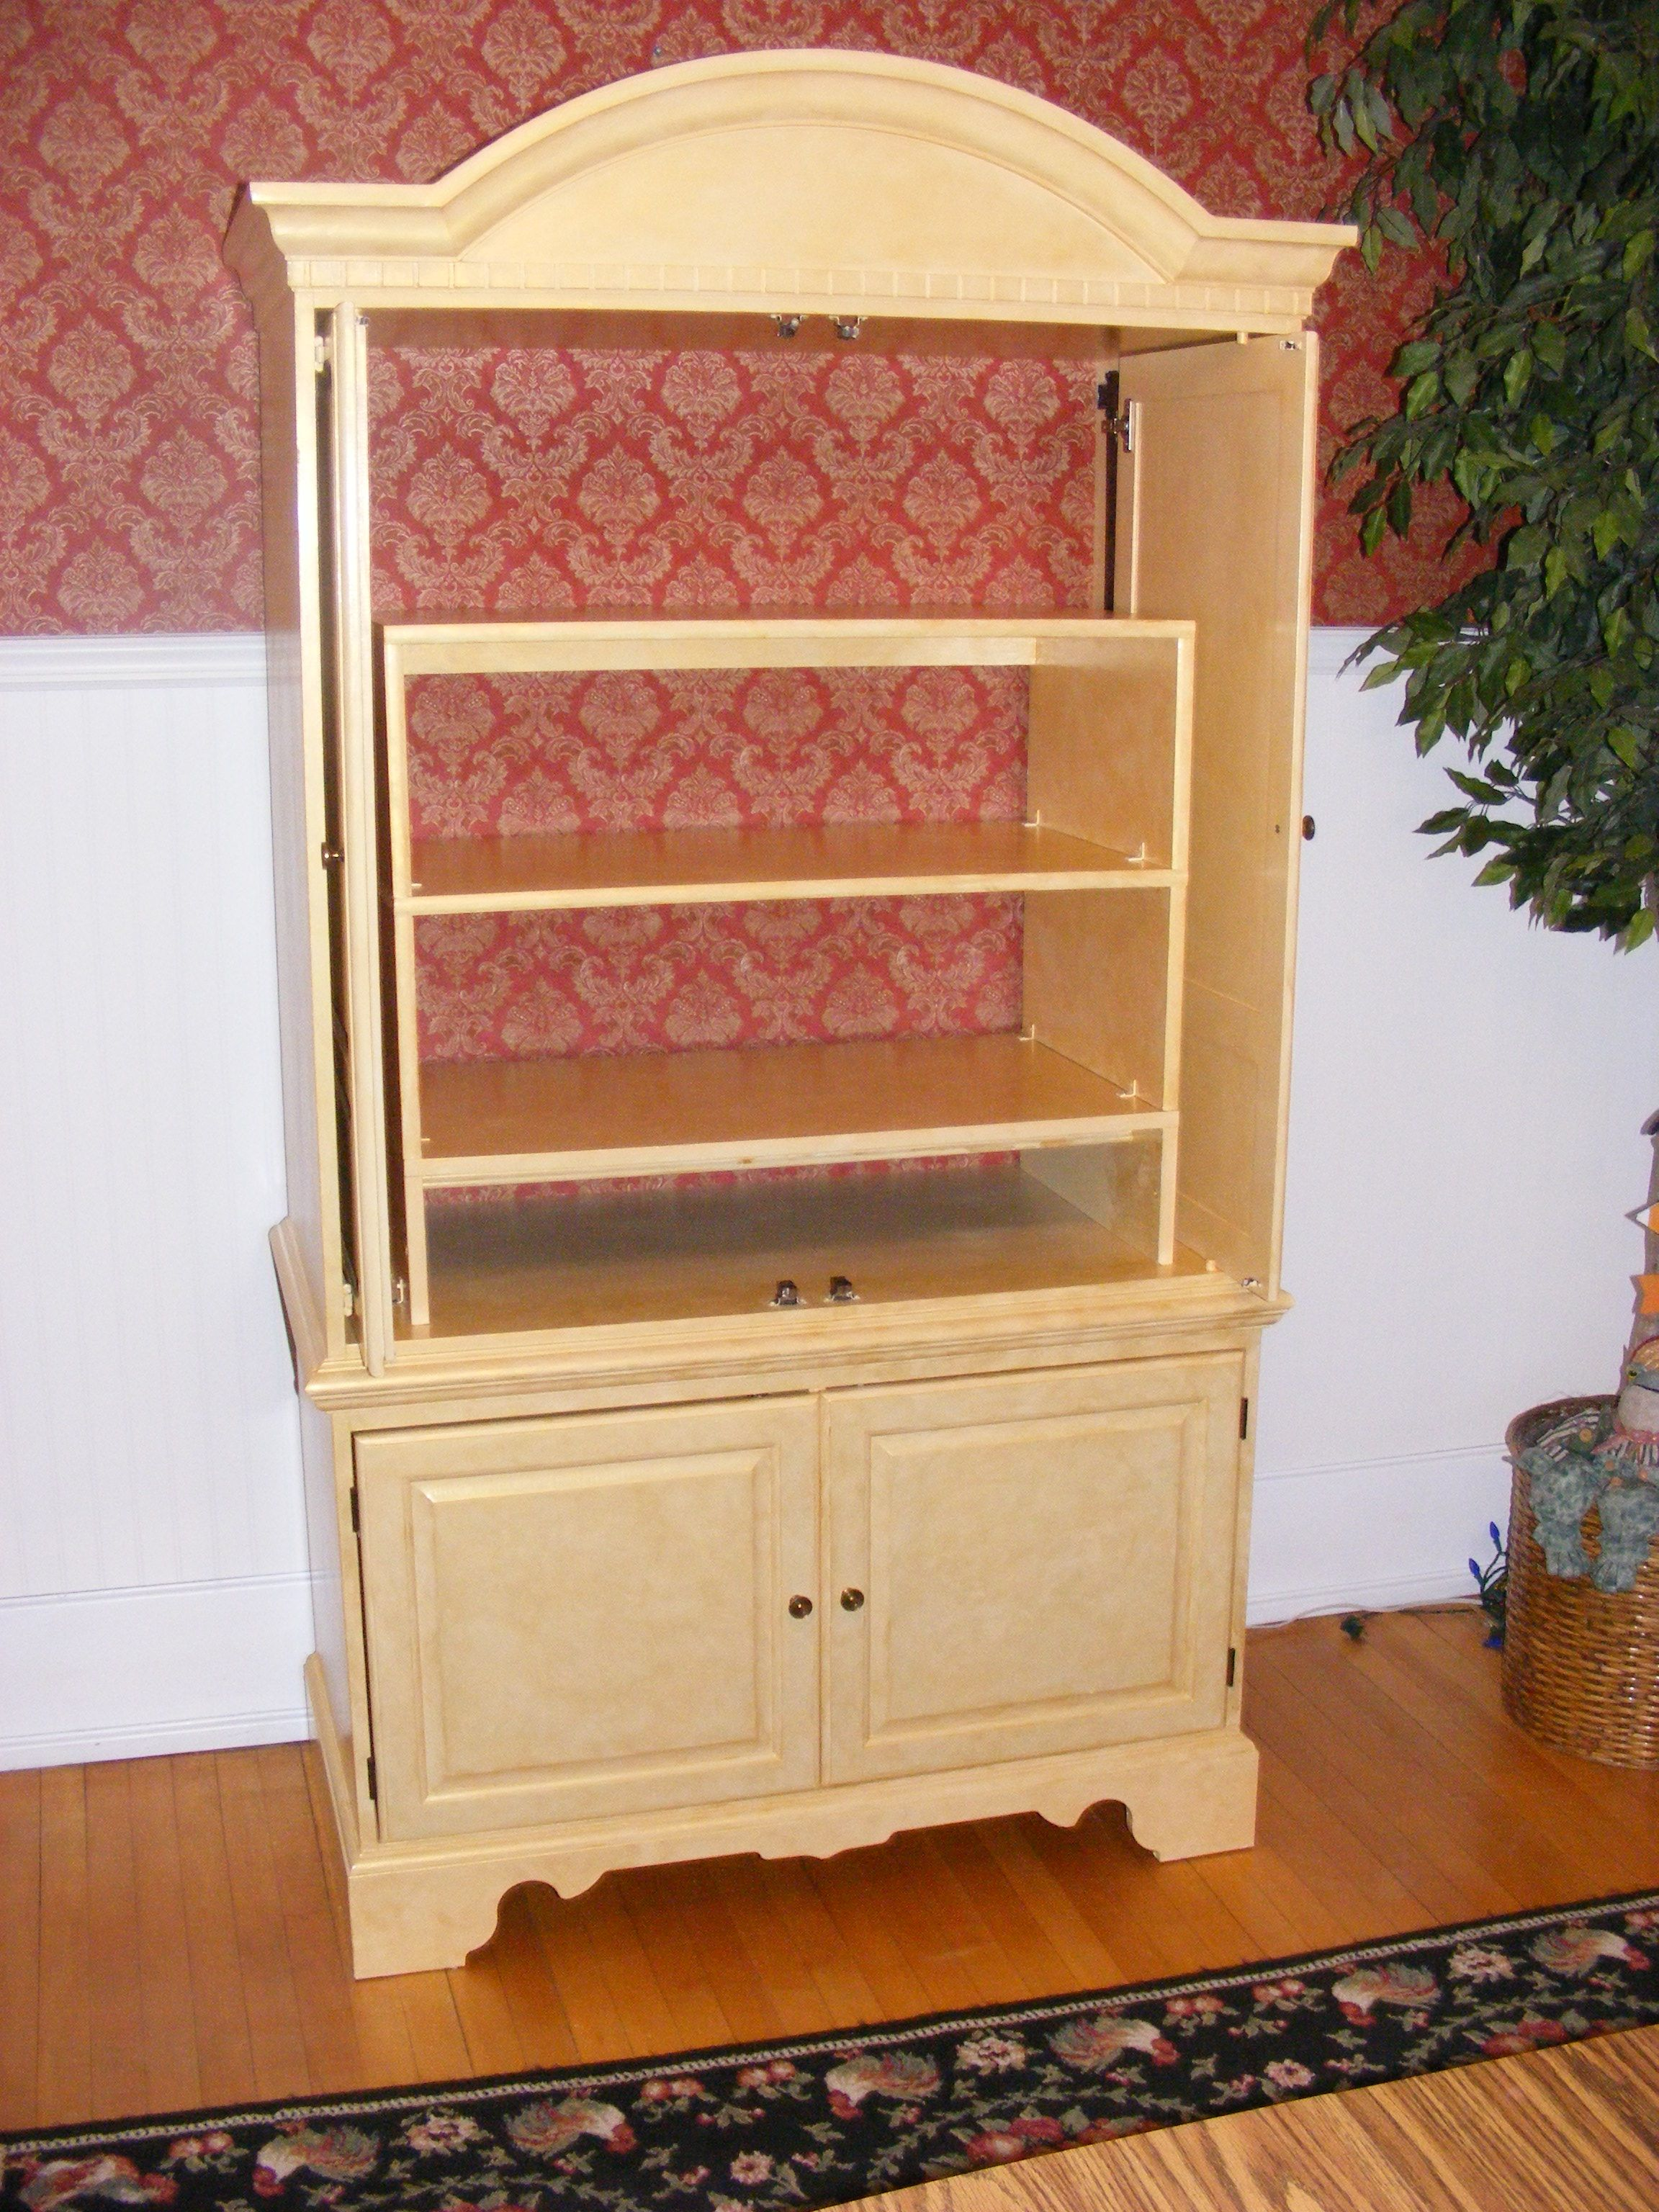 changed out the tv armoire for a dining room hutch. Primed/painted ...